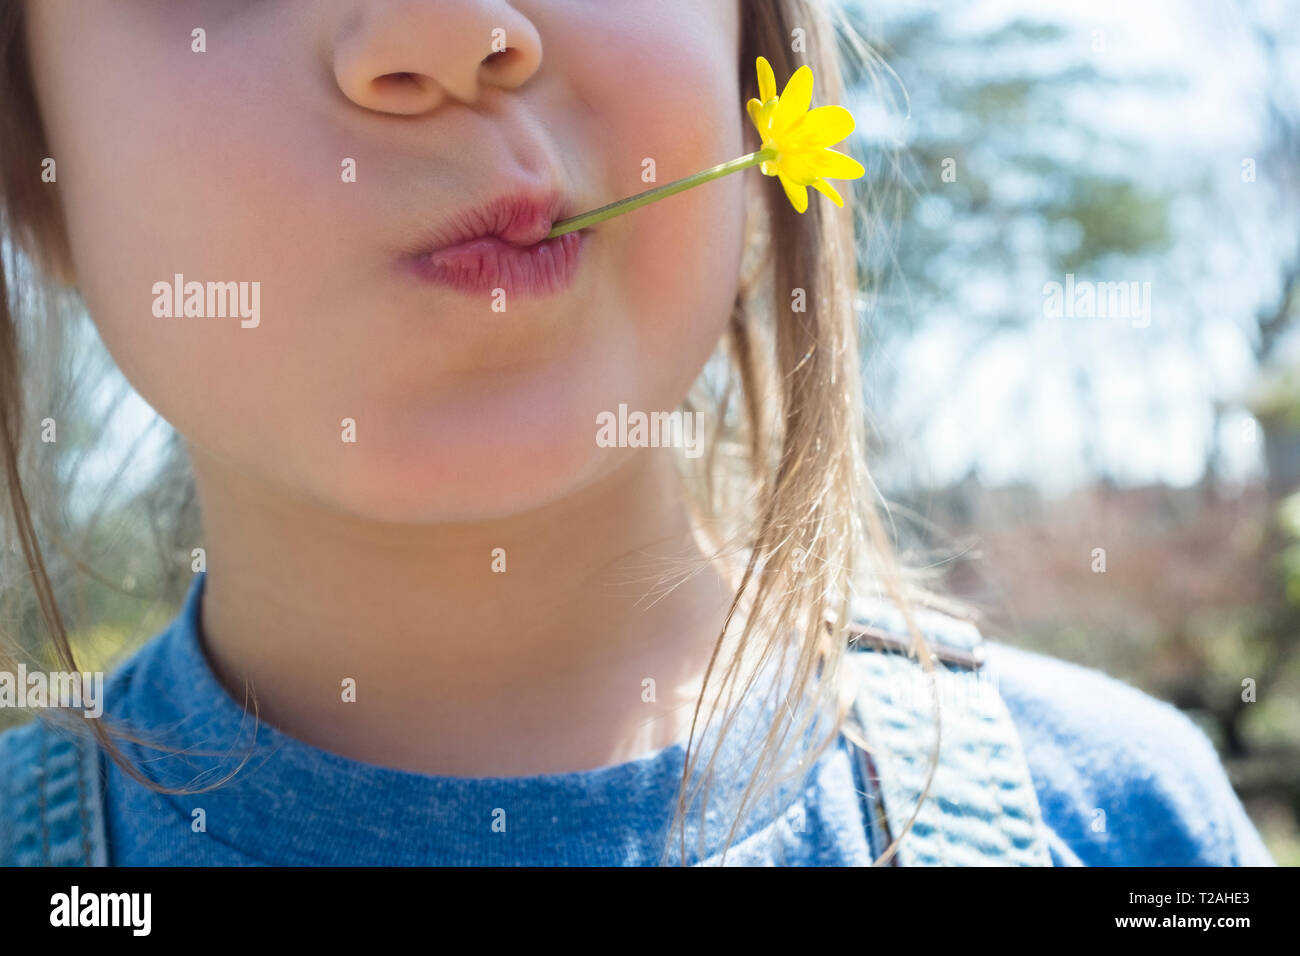 Girl with yellow flower in mouth Stock Photo